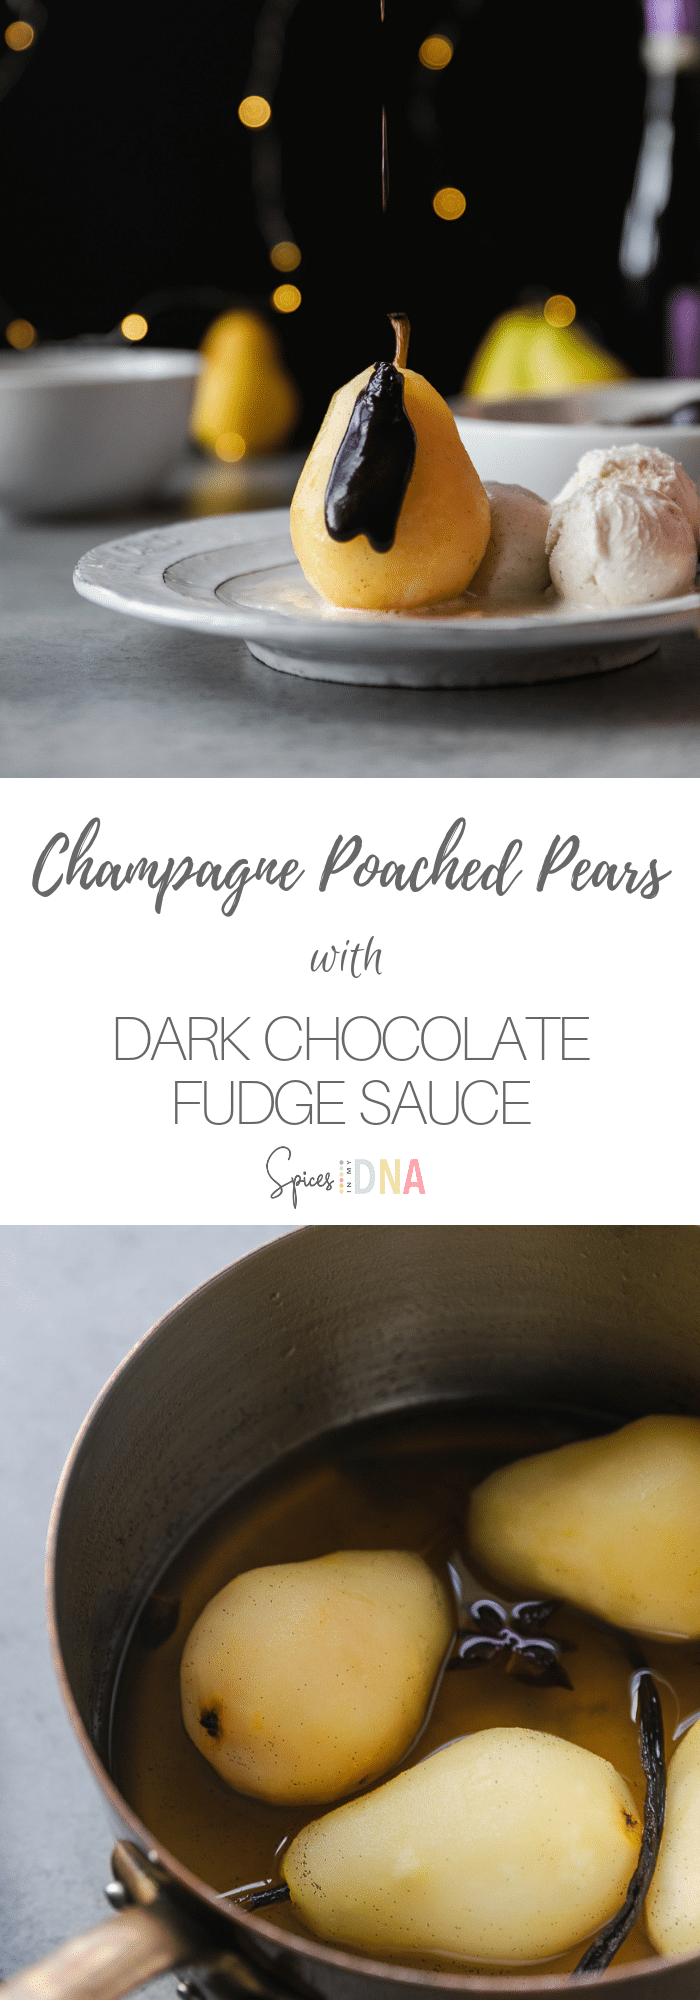 These Champagne Poached Pears with Dark Chocolate Fudge Sauce are a simple but elegant dessert to serve for New Years or anytime you want something a little fancy! They couldn't be simpler to make - you just poach pears in a little champagne with sugar and spices, make a quick chocolate fudge sauce, and serve them up with ice cream! #poachedpears #dessert #darkchocolate #fudgesauce #champagne #champagnedessert #pears